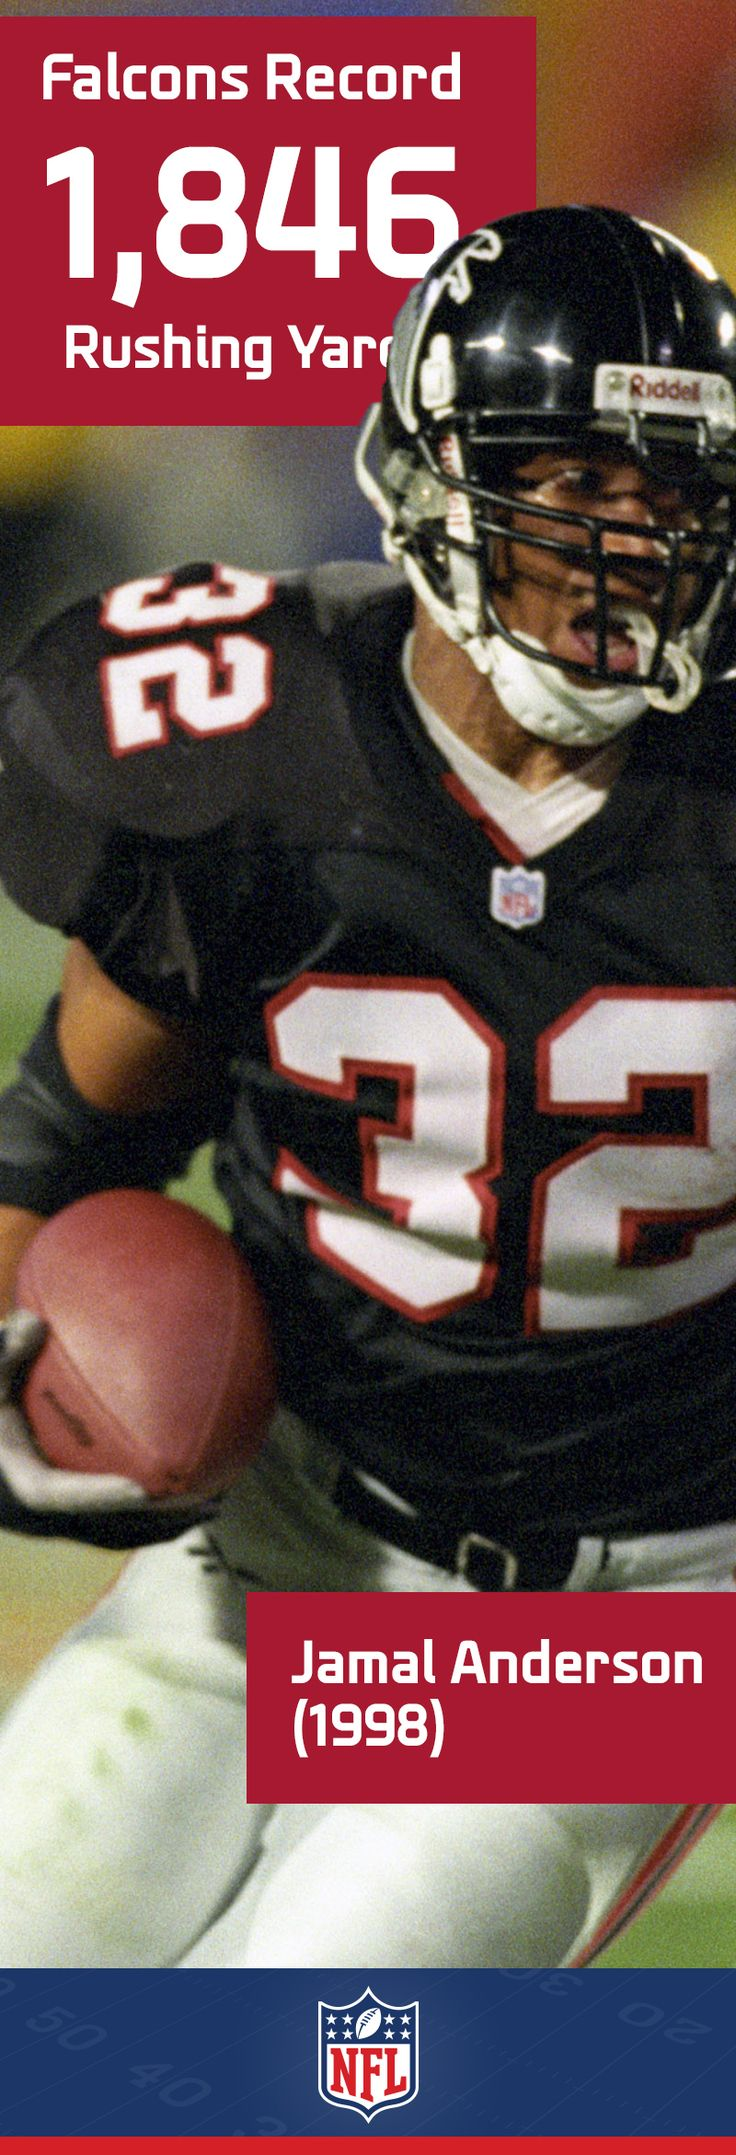 Jamal Anderson's 1,846 yards on the ground led the NFC in 1998, and helped carried the team all the way to Super Bowl XXXIII – a fitting performance to hold the Atlanta Falcons team record.